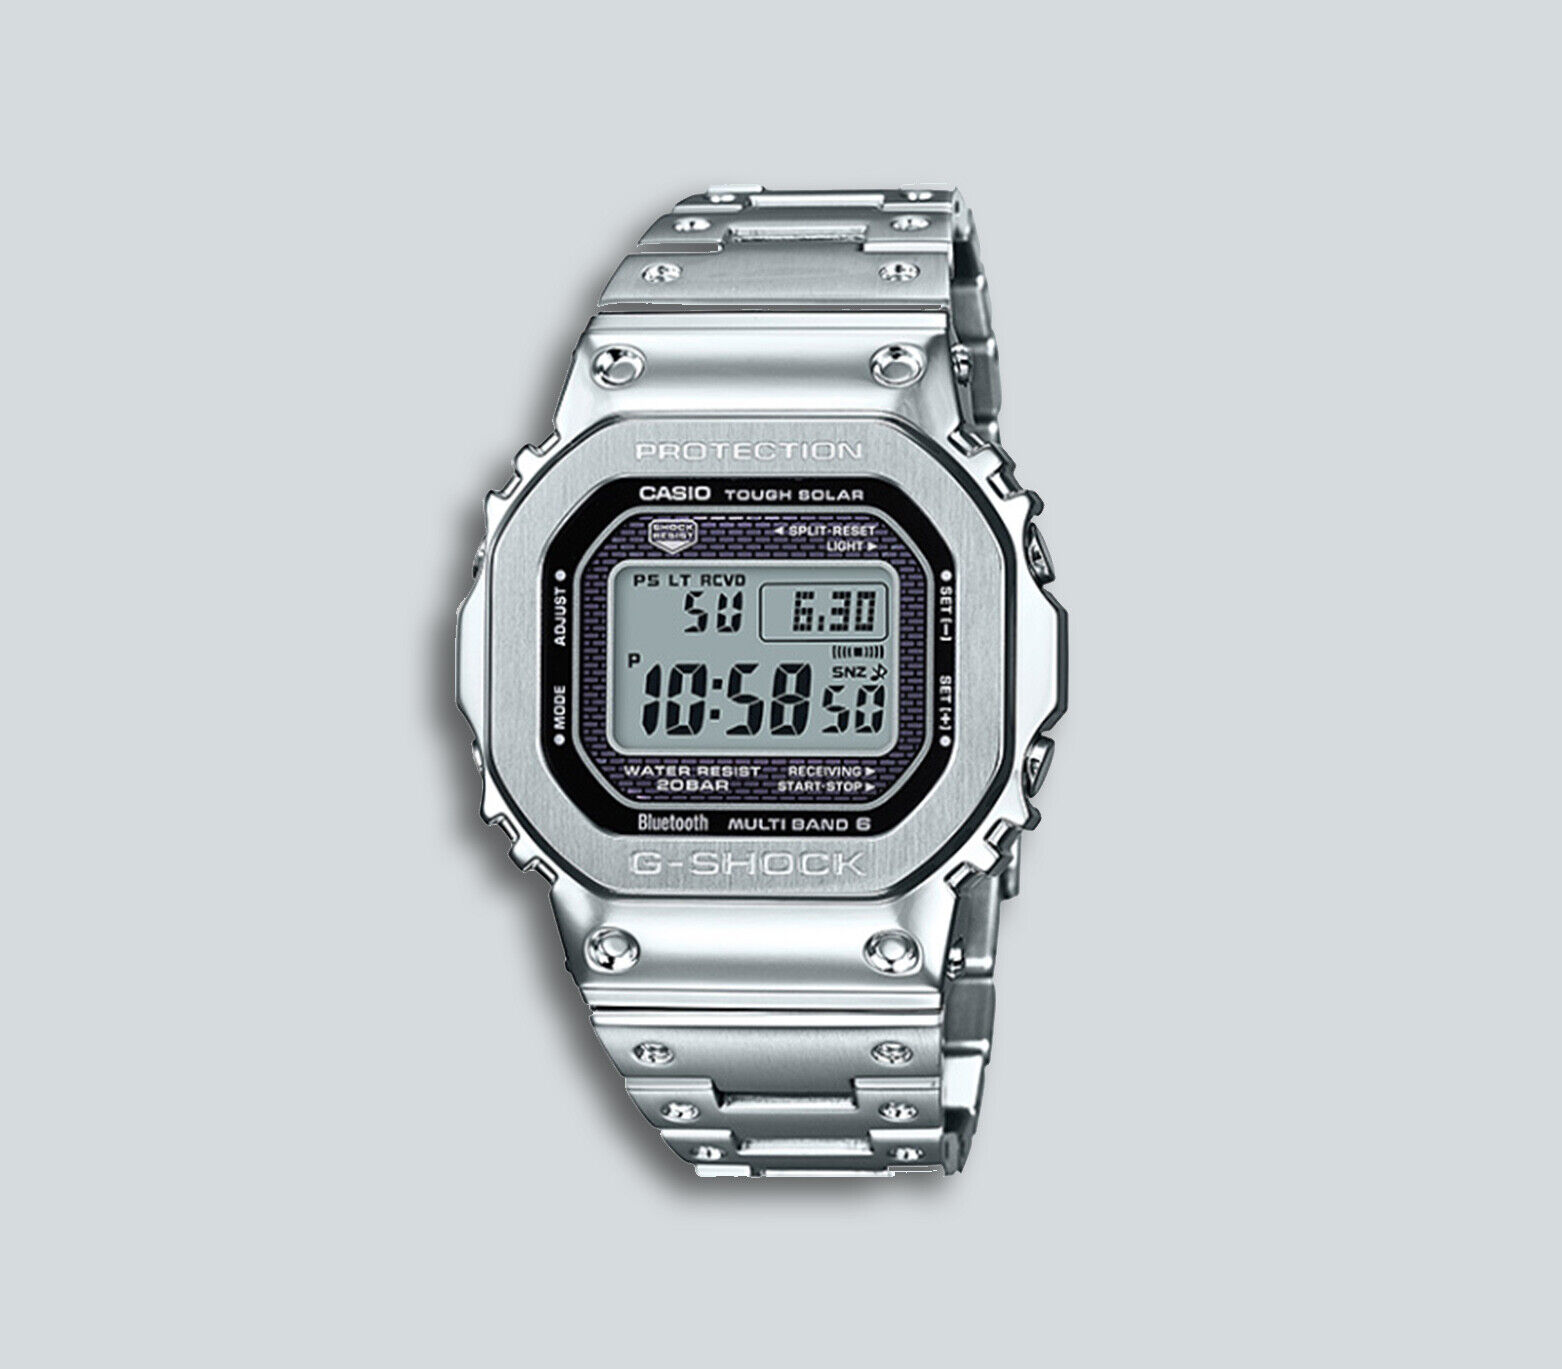 premium selection 4d72f cb4a6 Authentic Men's G-Shock Casio Digital Stainless Steel Watch GMWB5000D-1